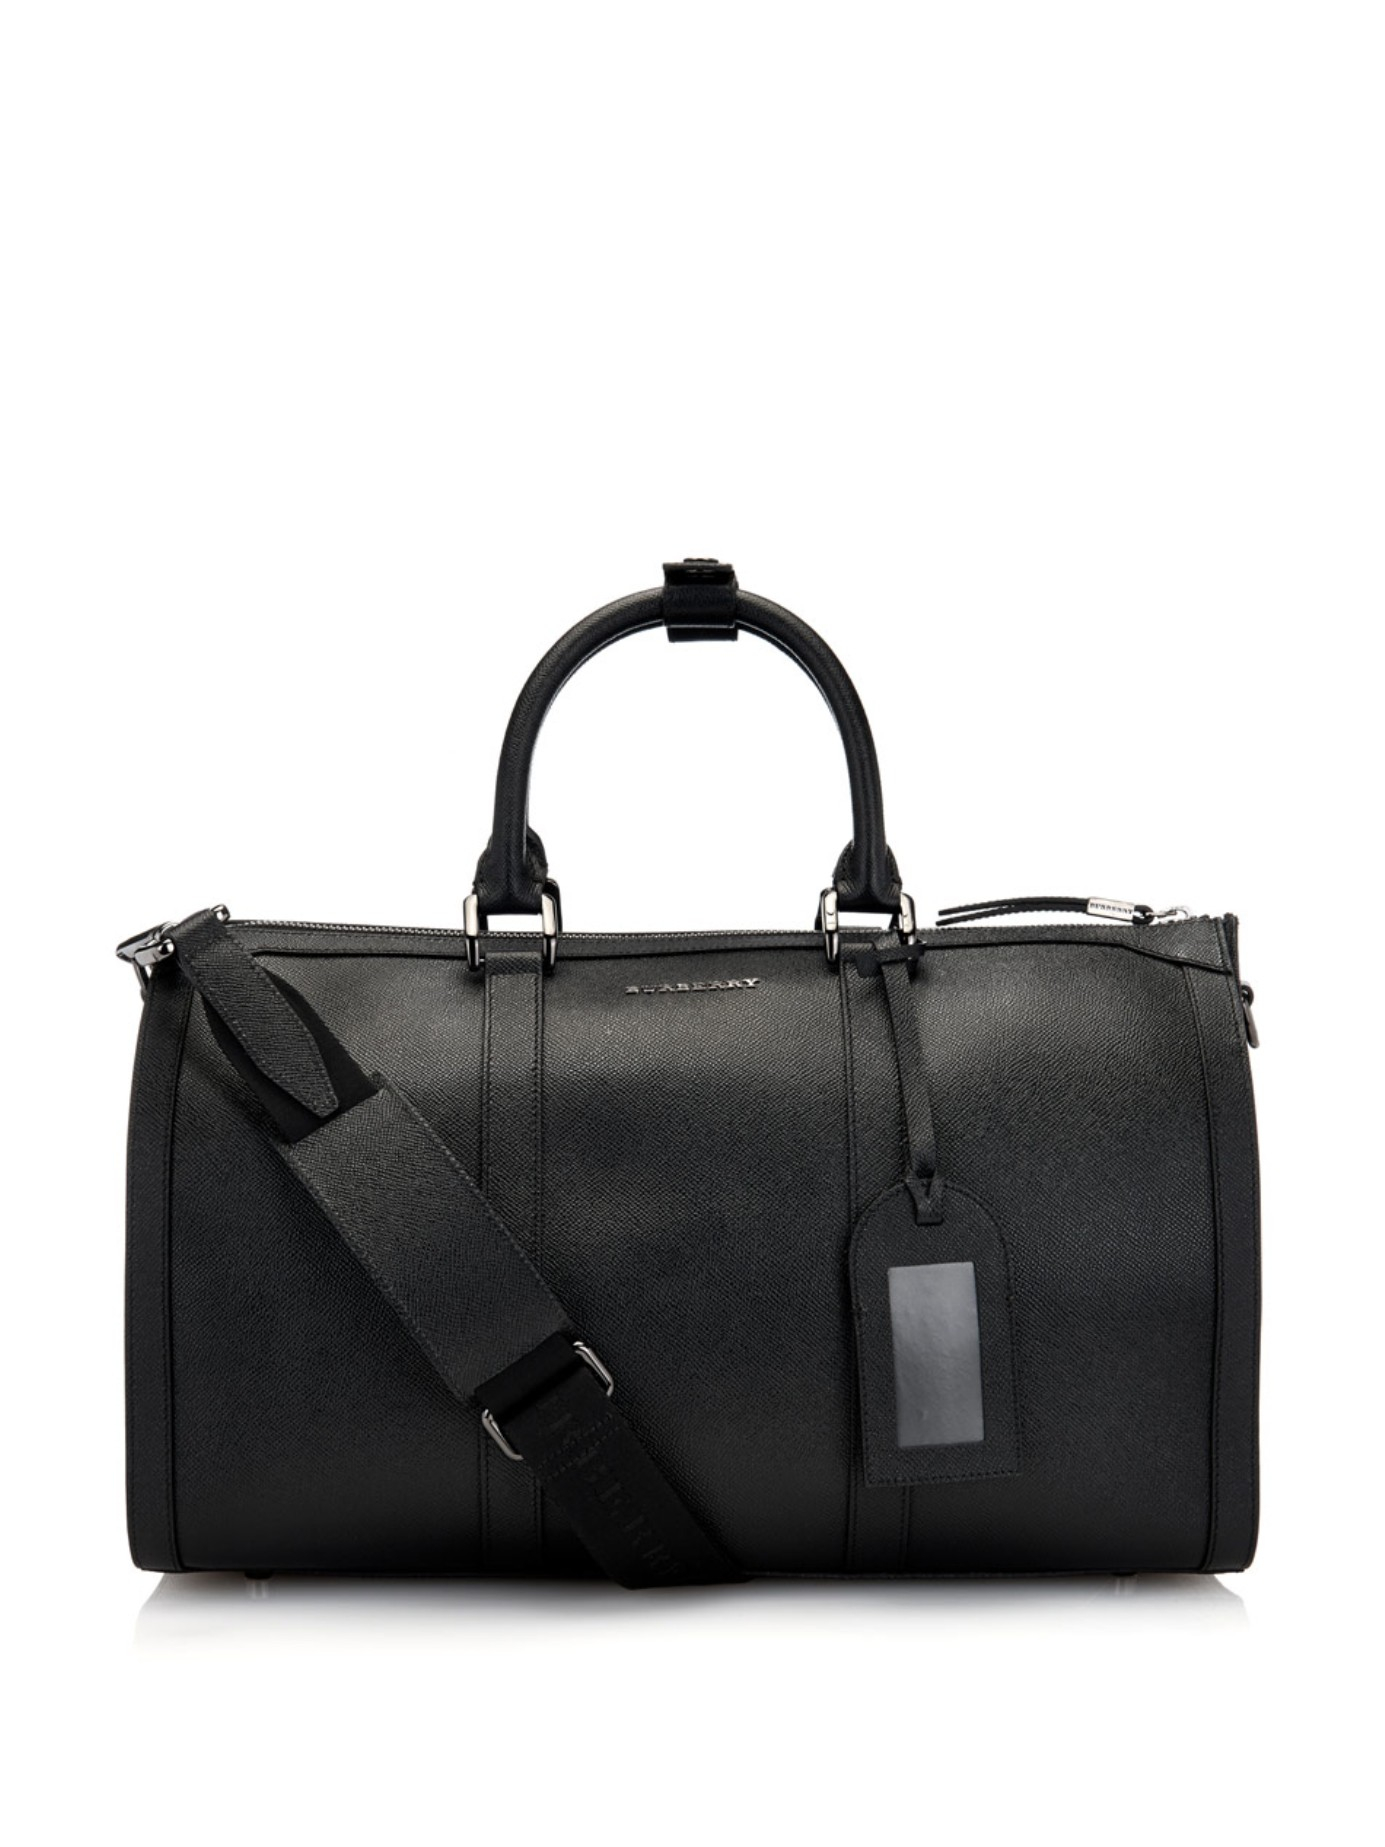 leather weekend bags for men - photo #40